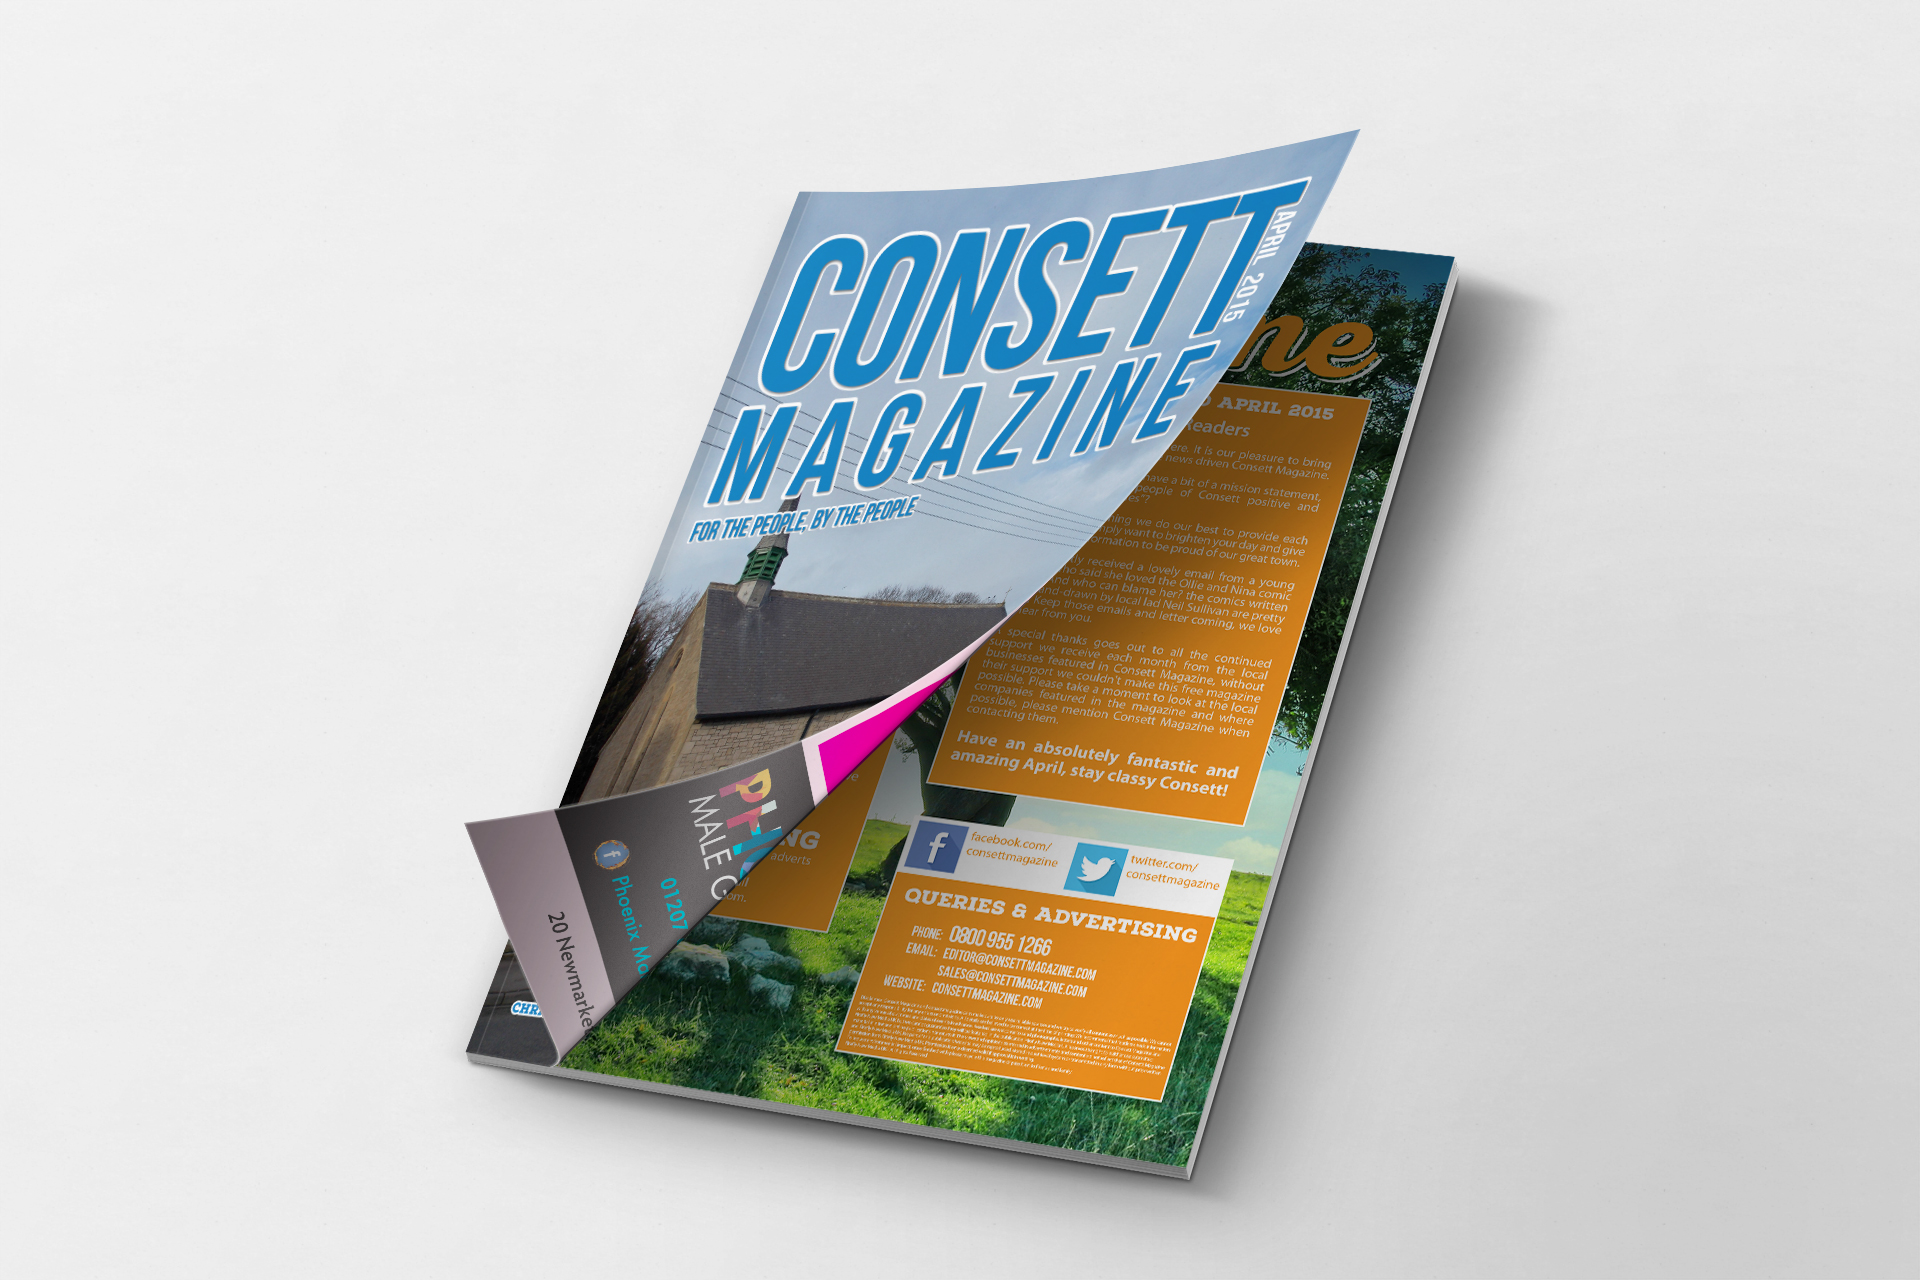 Consett Magazine April